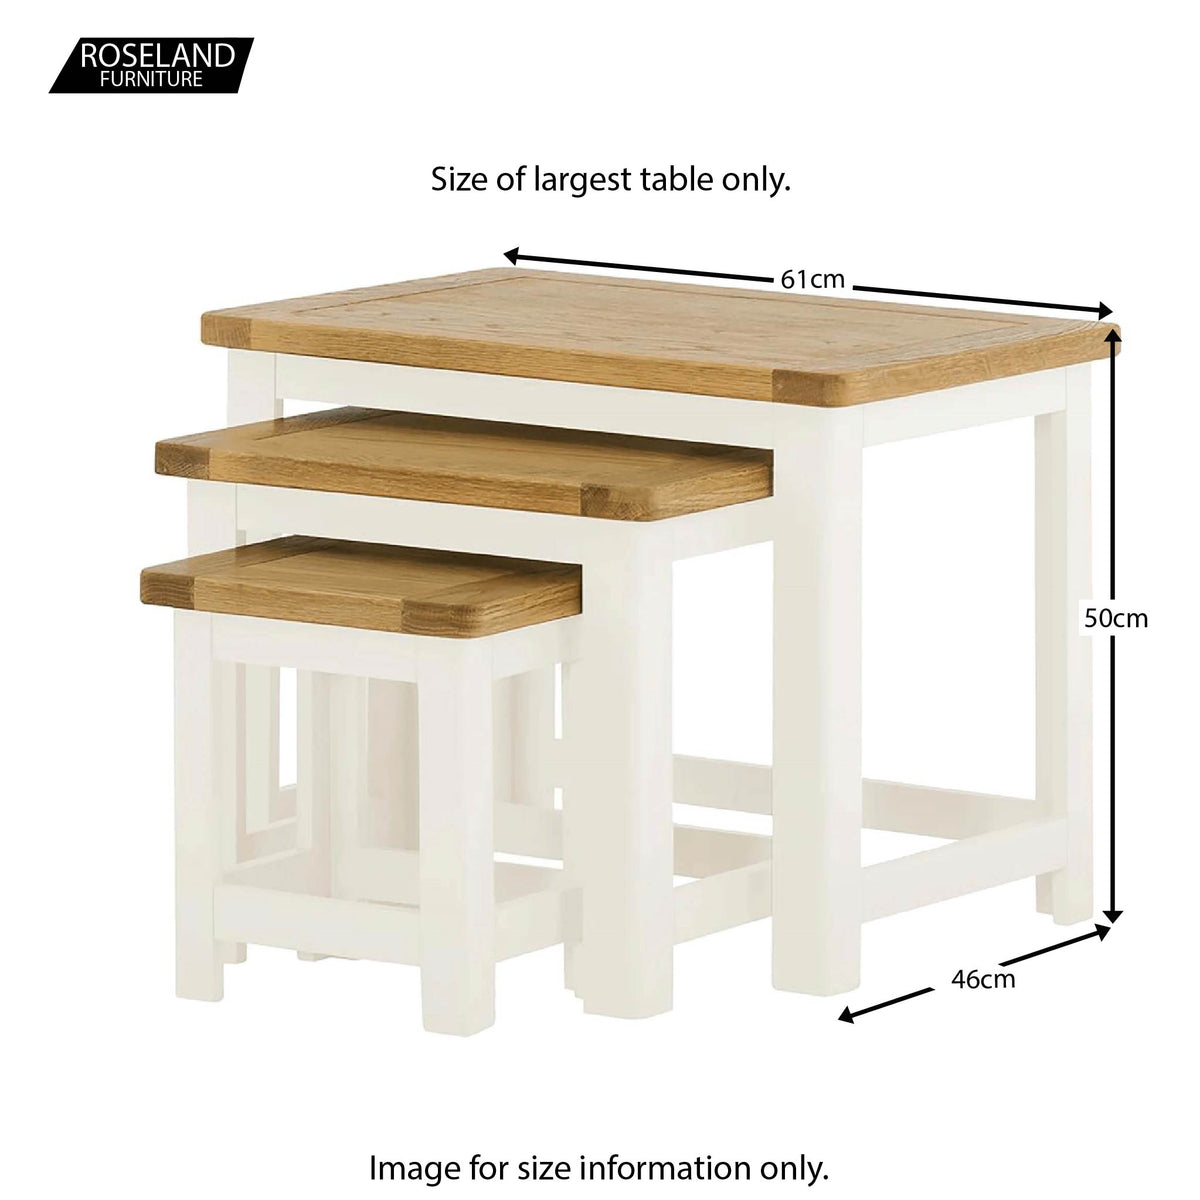 Padstow White Wooden Nest of Tables - Size Guide